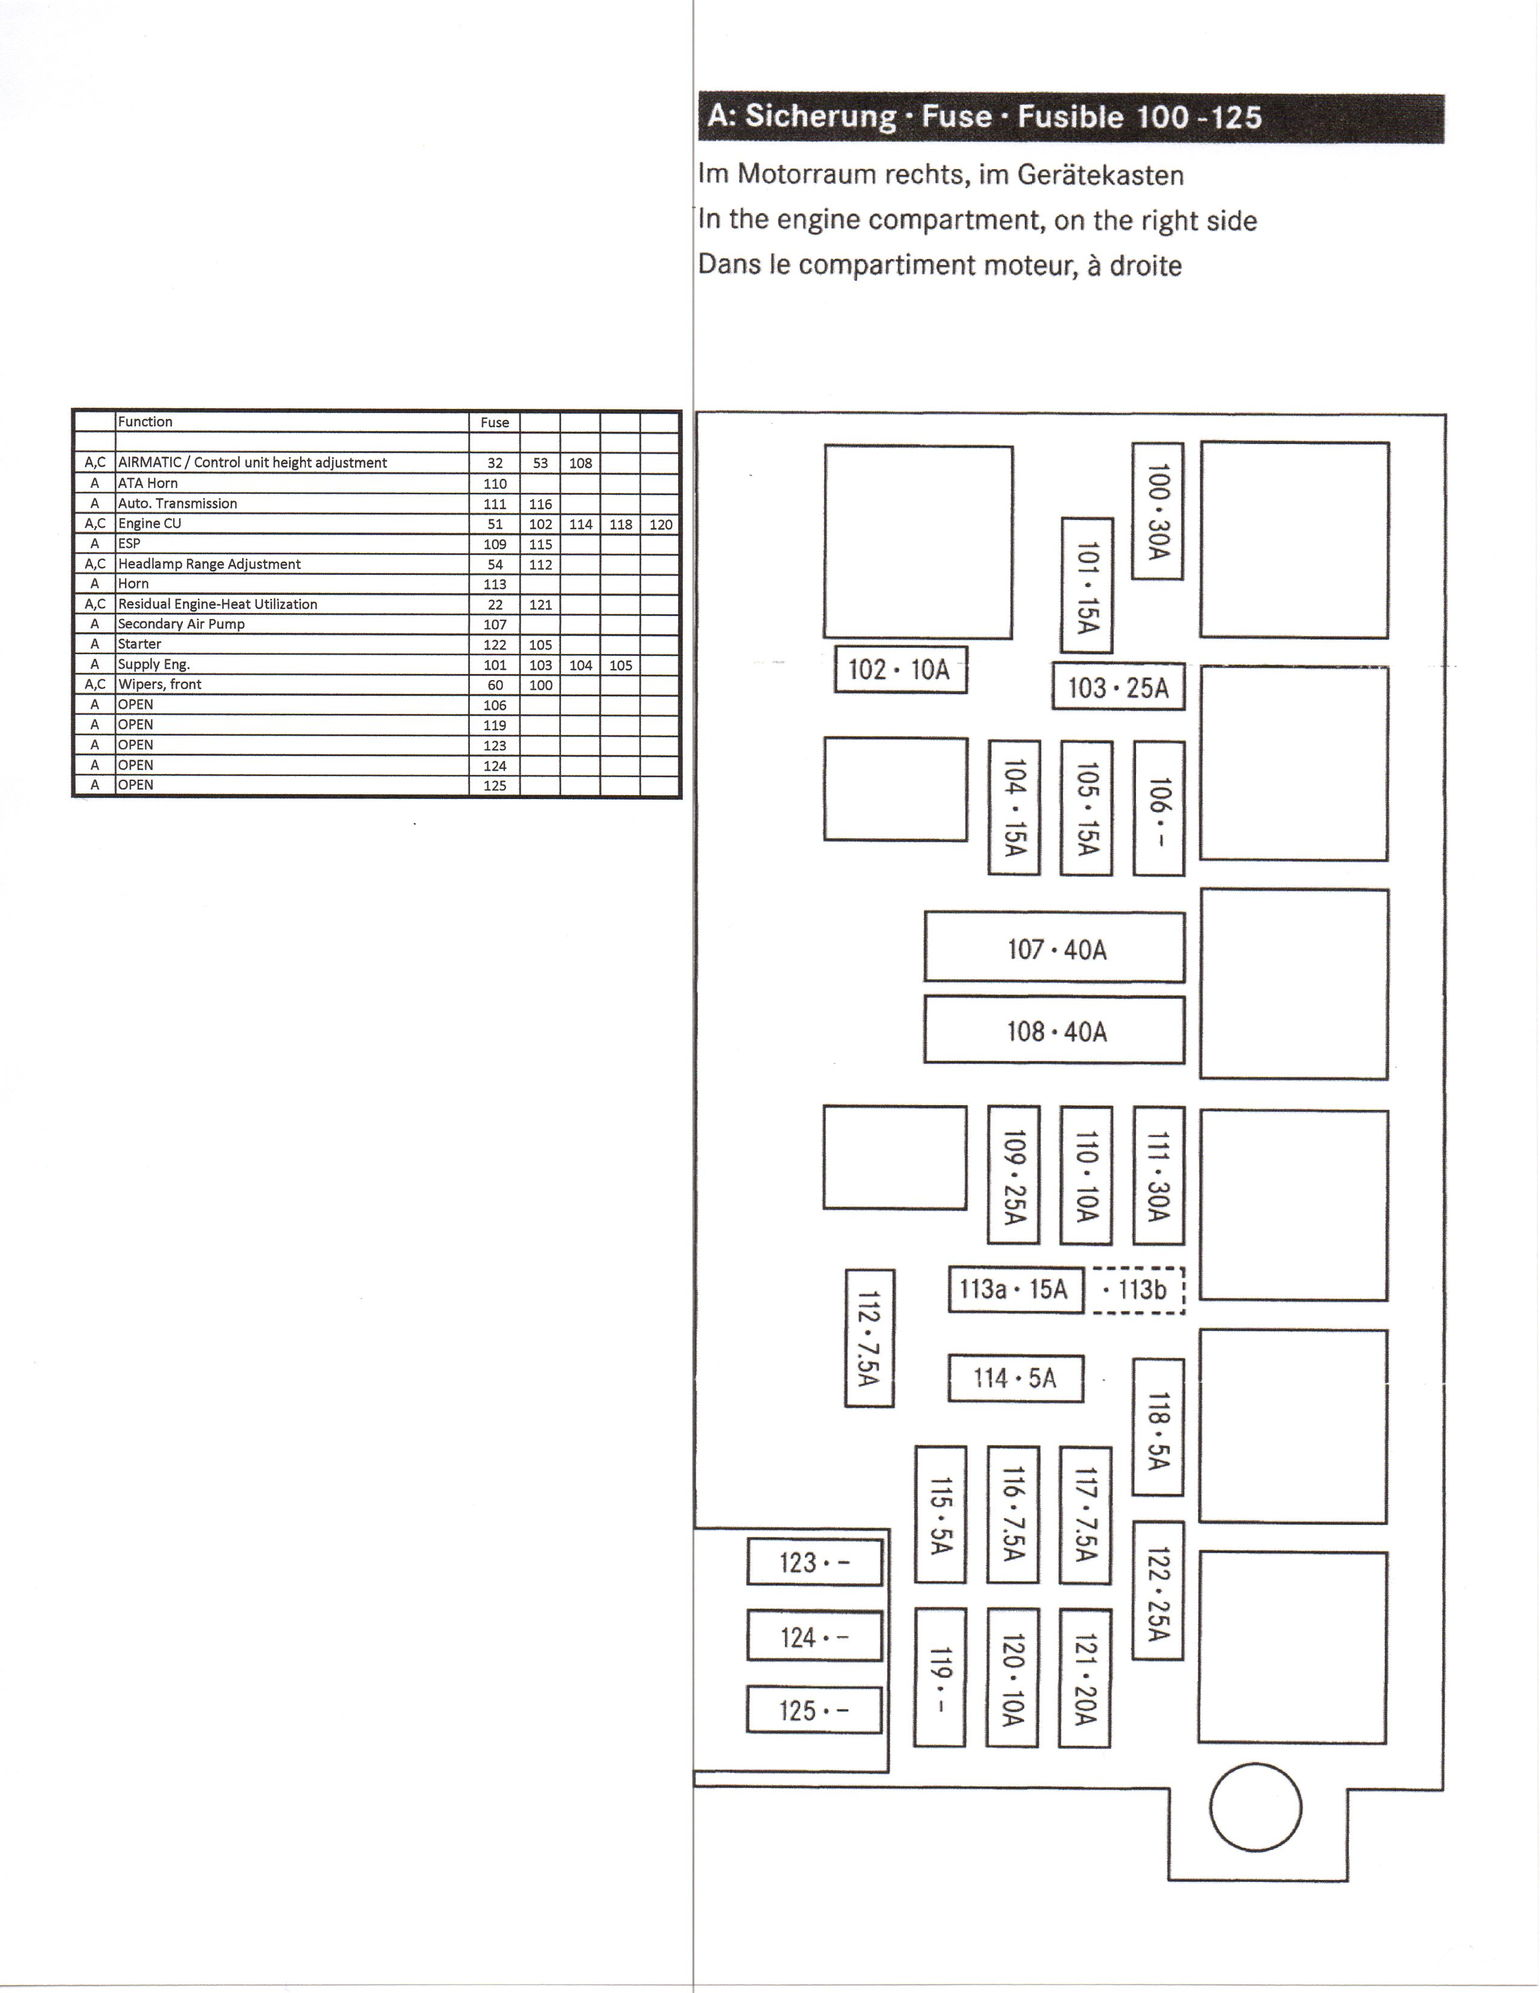 Mazda 6 2008 Fusibles Diagram. Mazda. Auto Parts Catalog